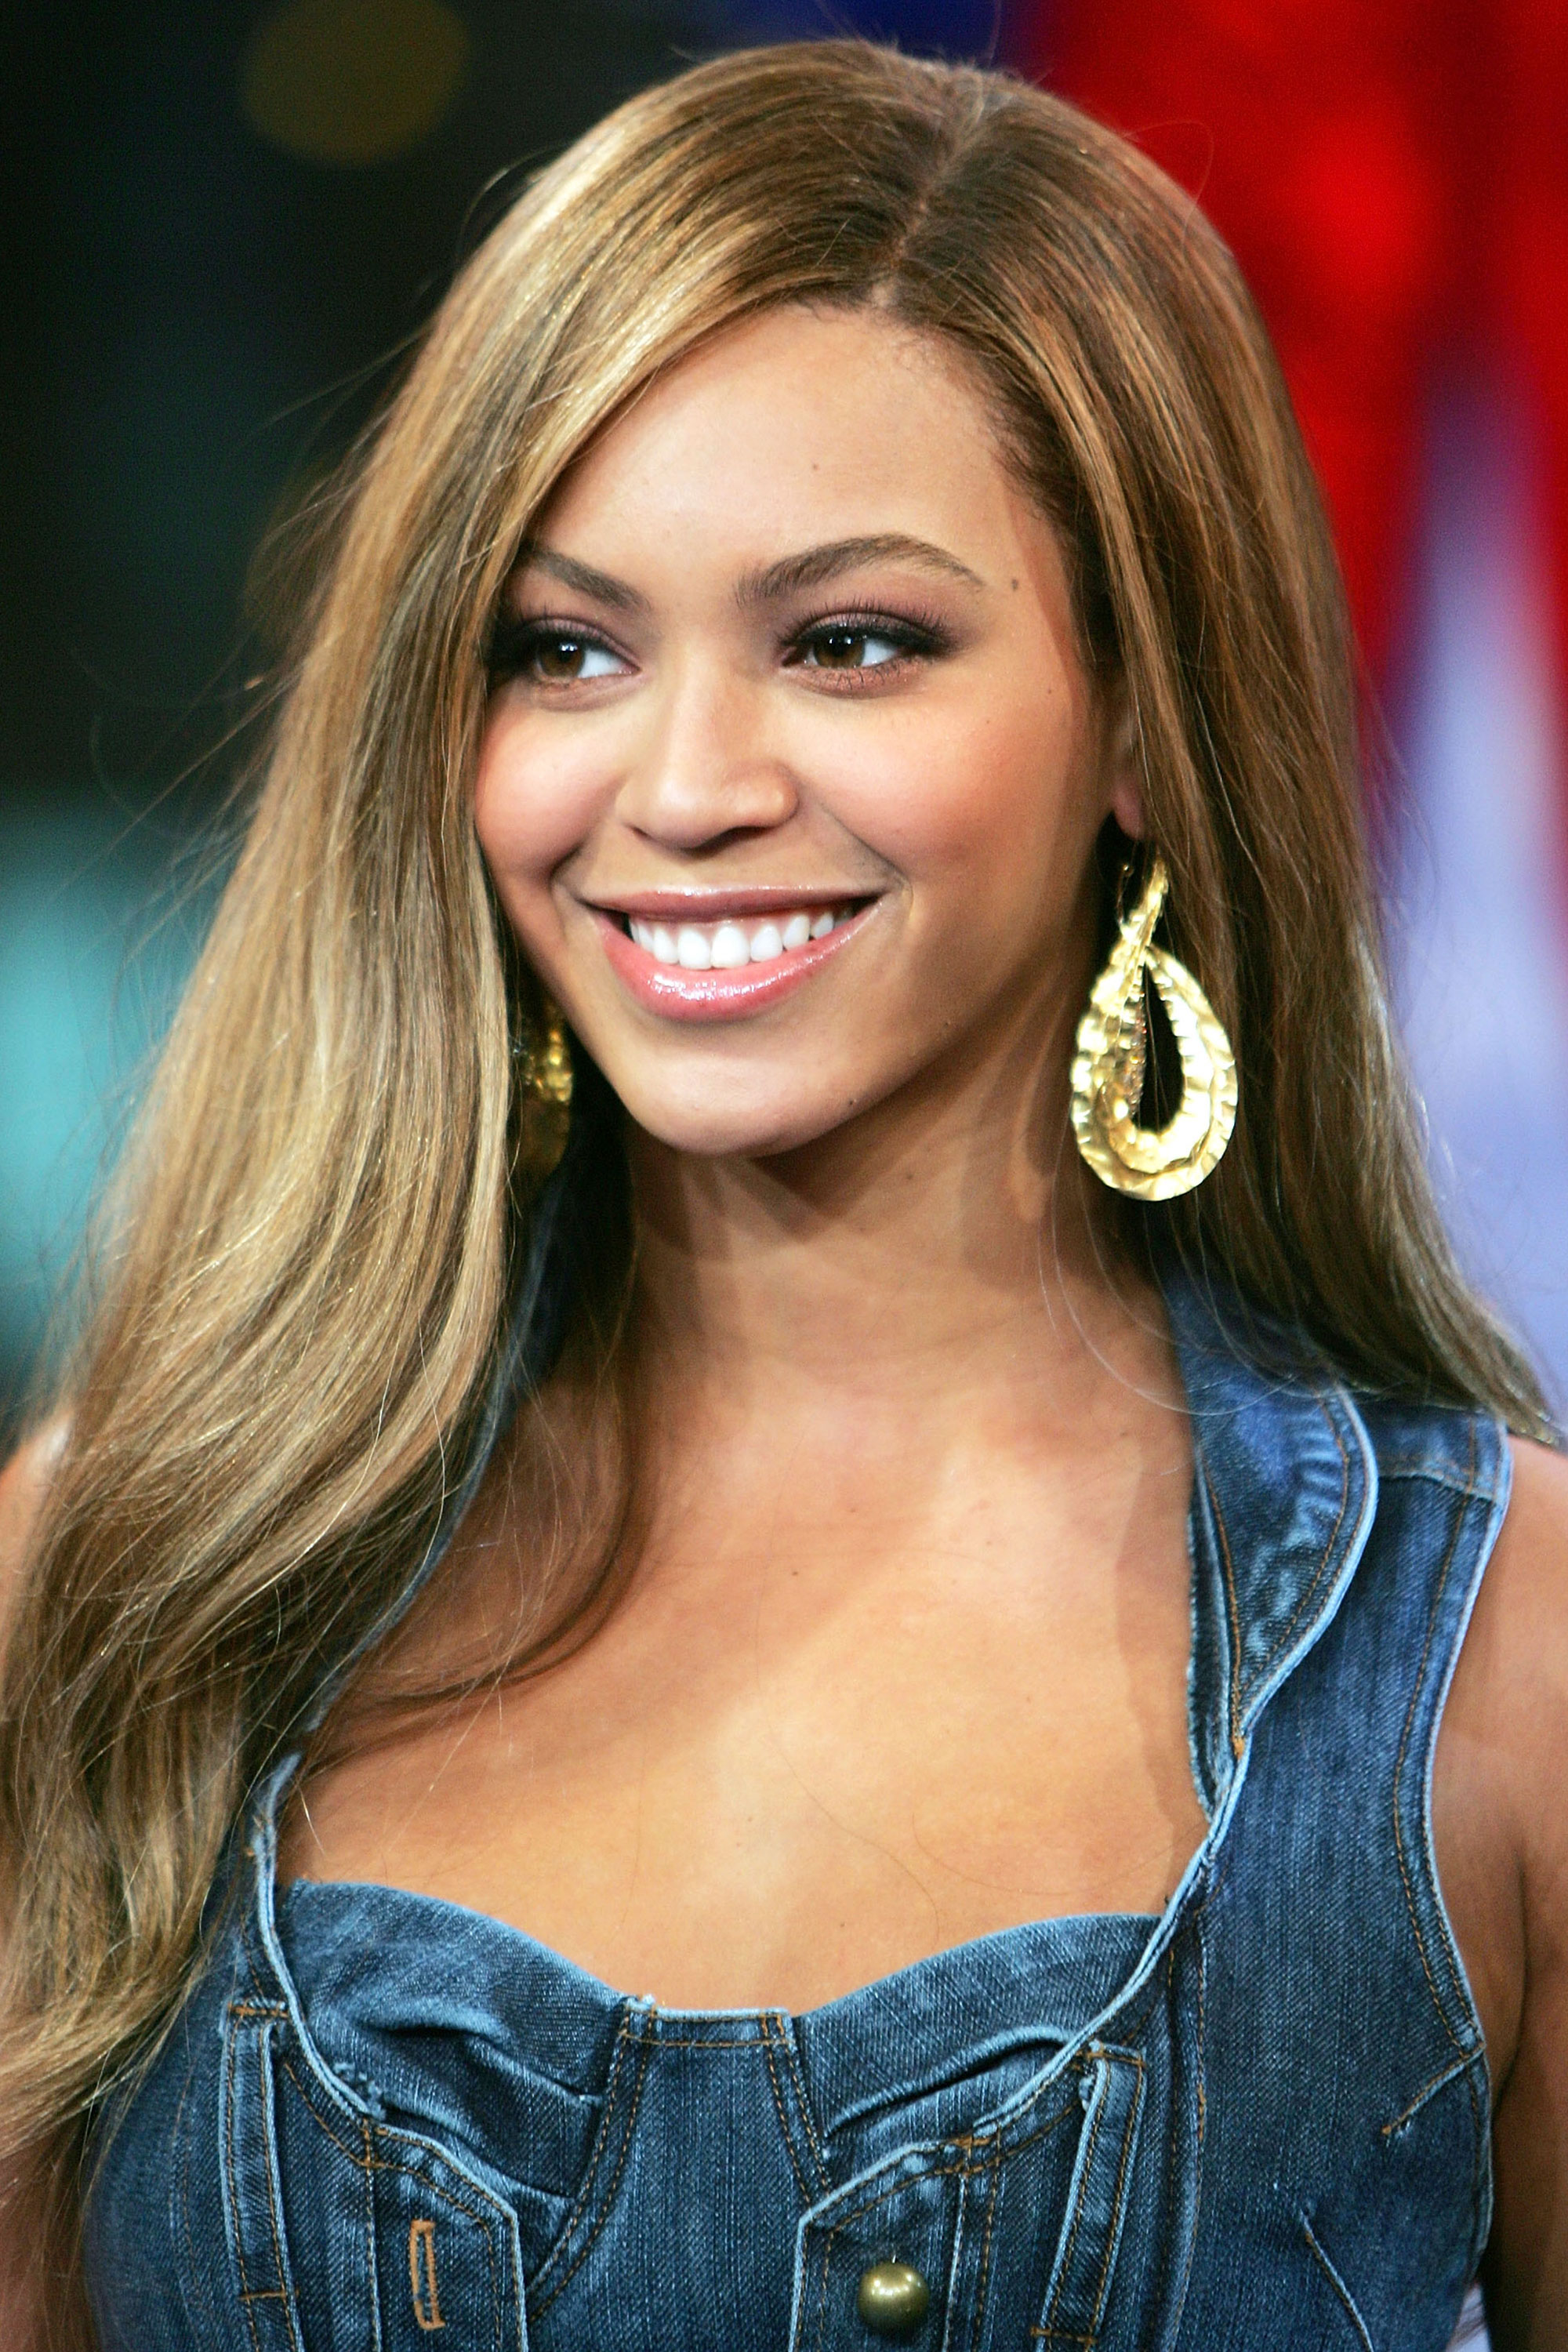 beyonce updo hairstyles : Beyonce 2005 Hair 40 beyonce hairstyles - beyonces real hair , long ...